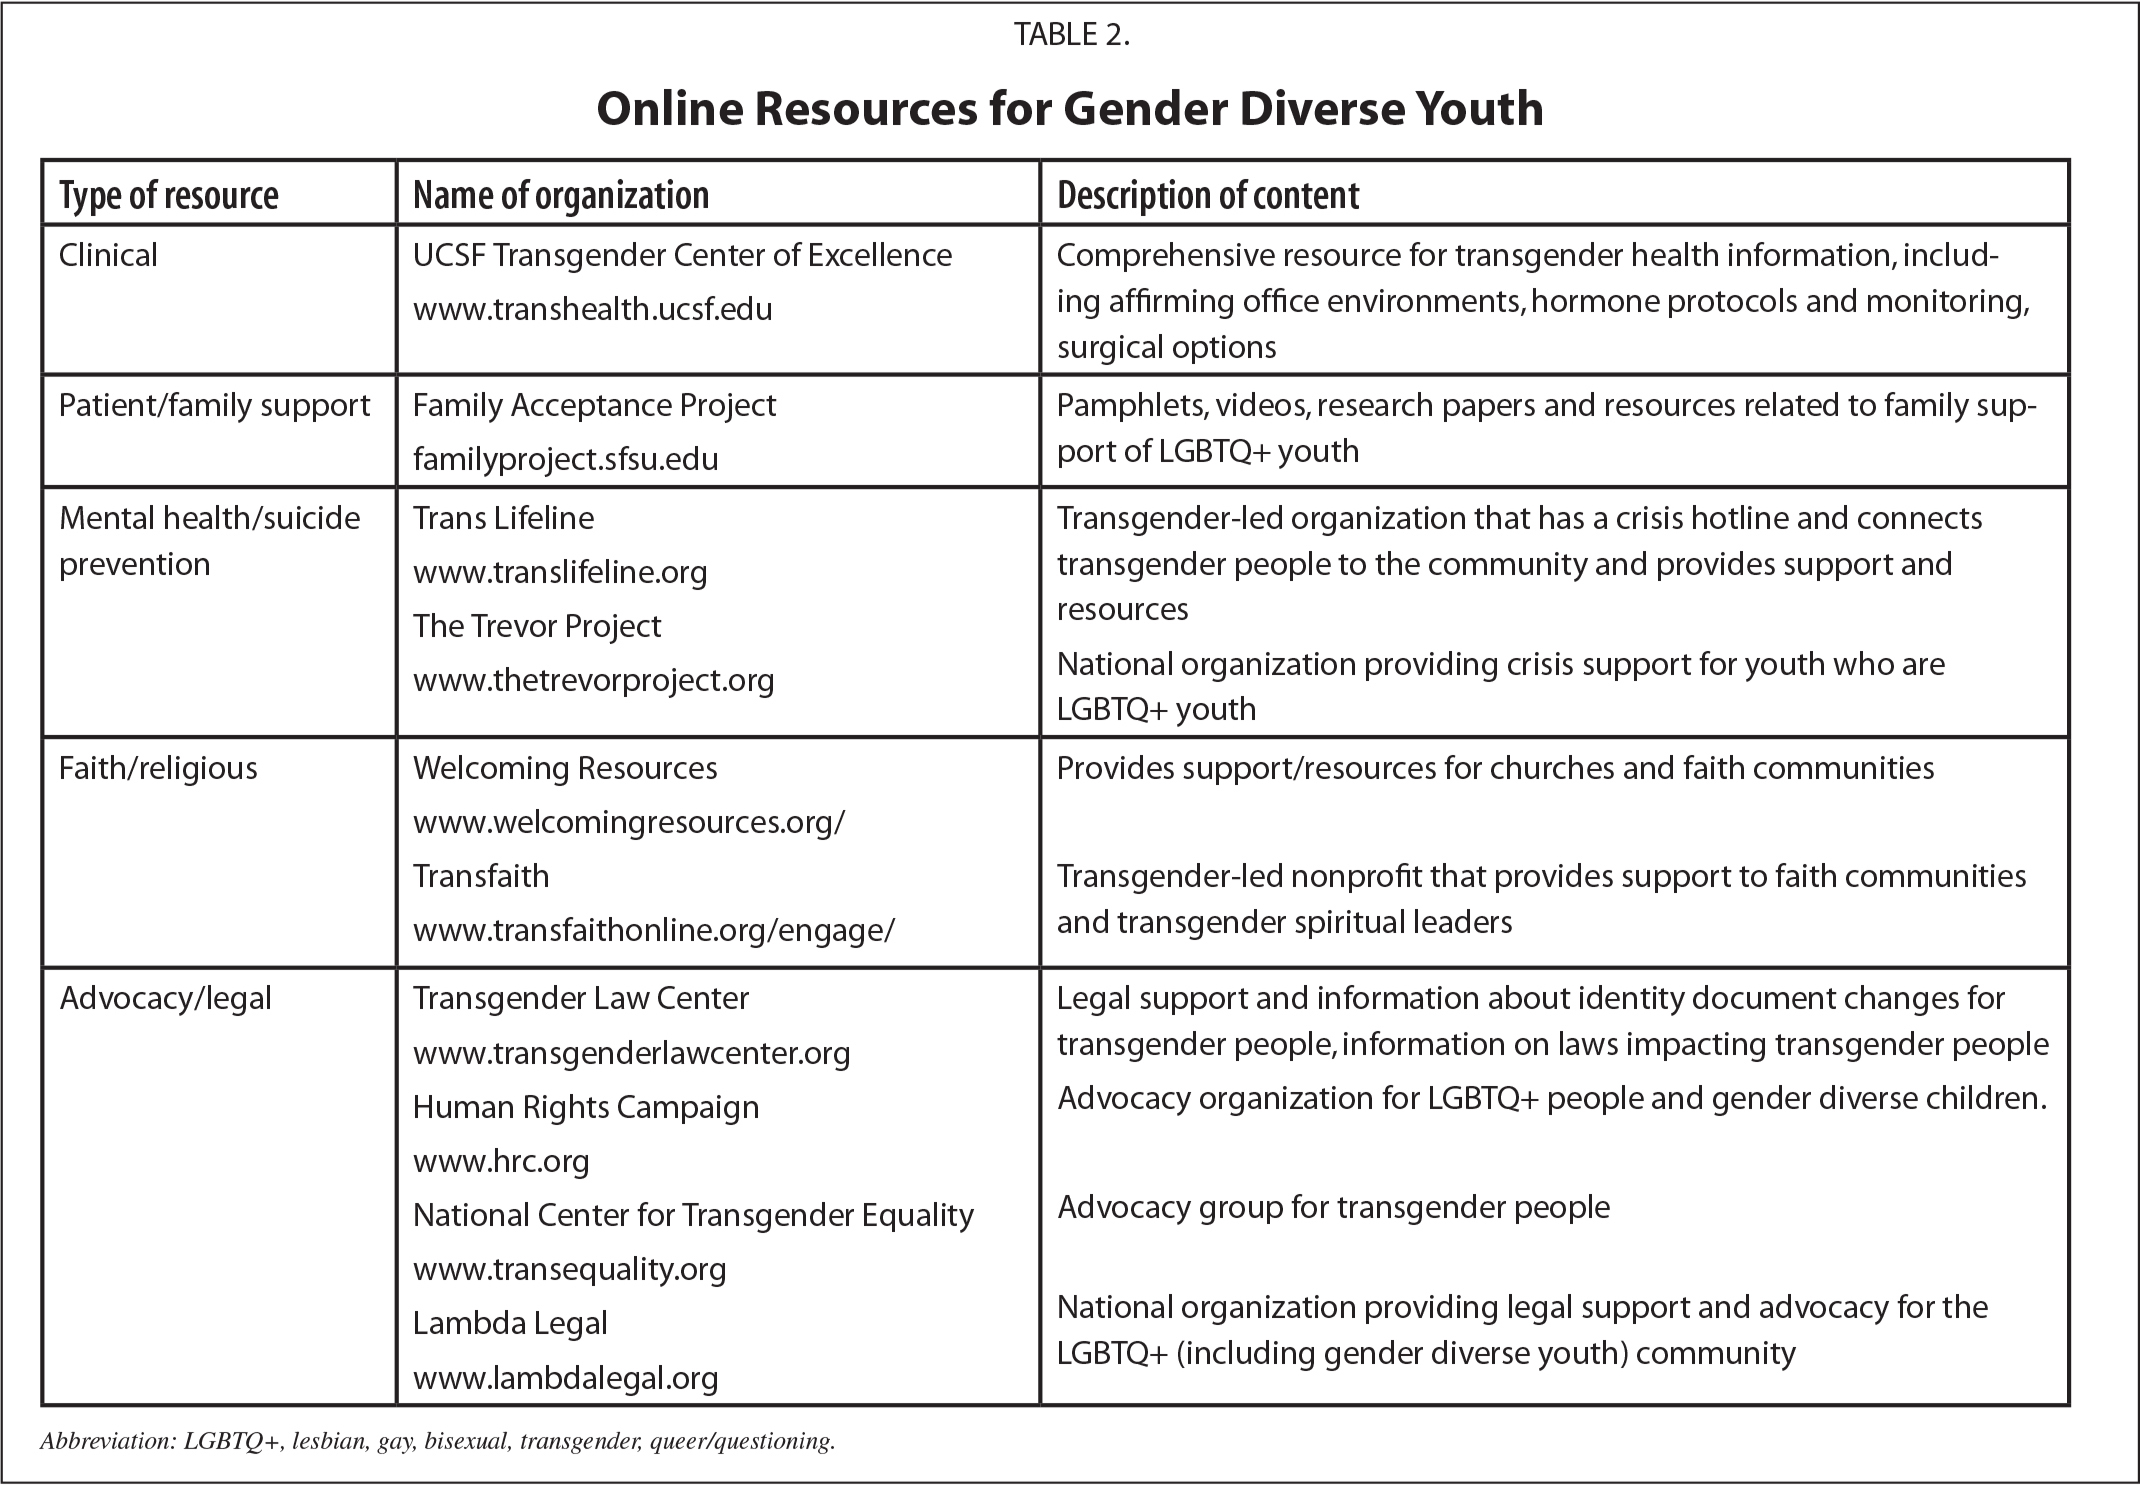 Online Resources for Gender Diverse Youth